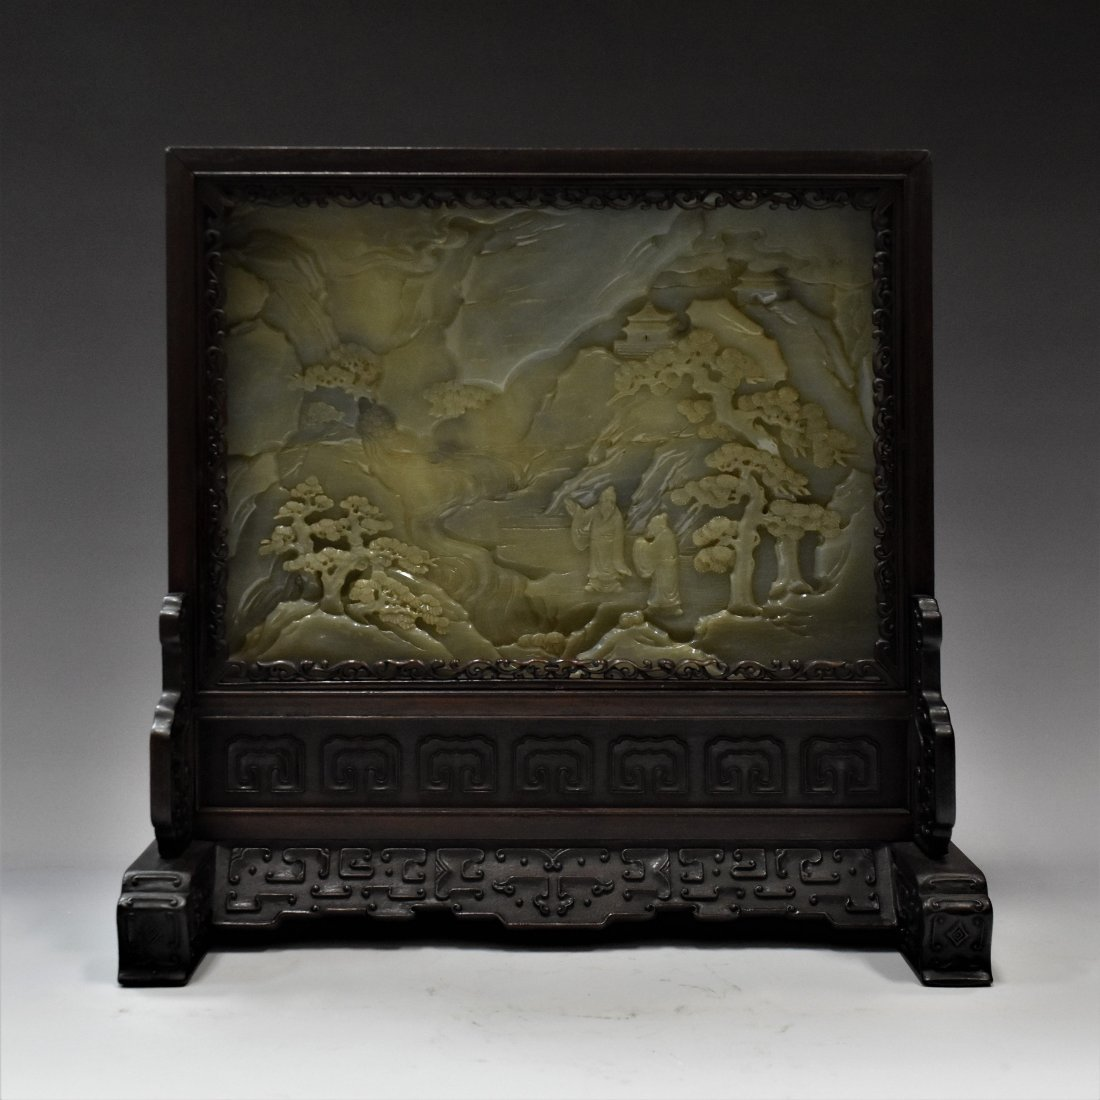 FRAMED CHINESE GRAYISH CELADON JADE TABLE SCREEN